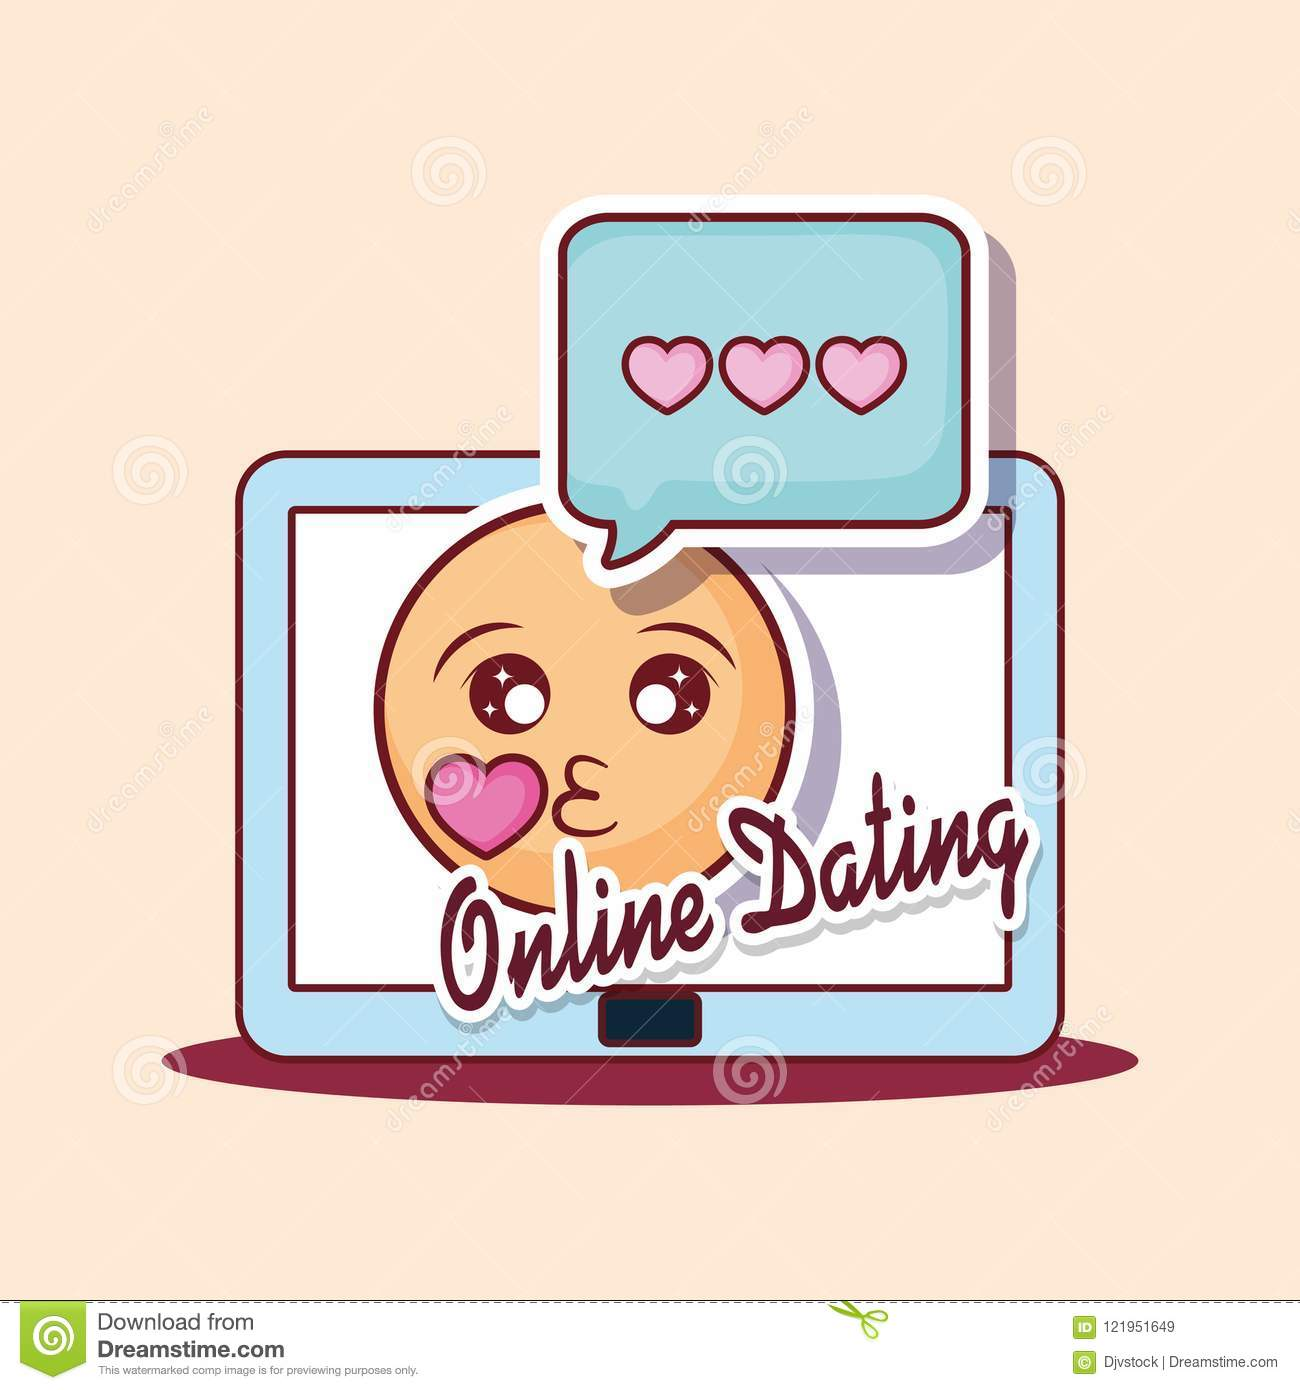 Bubbles online dating